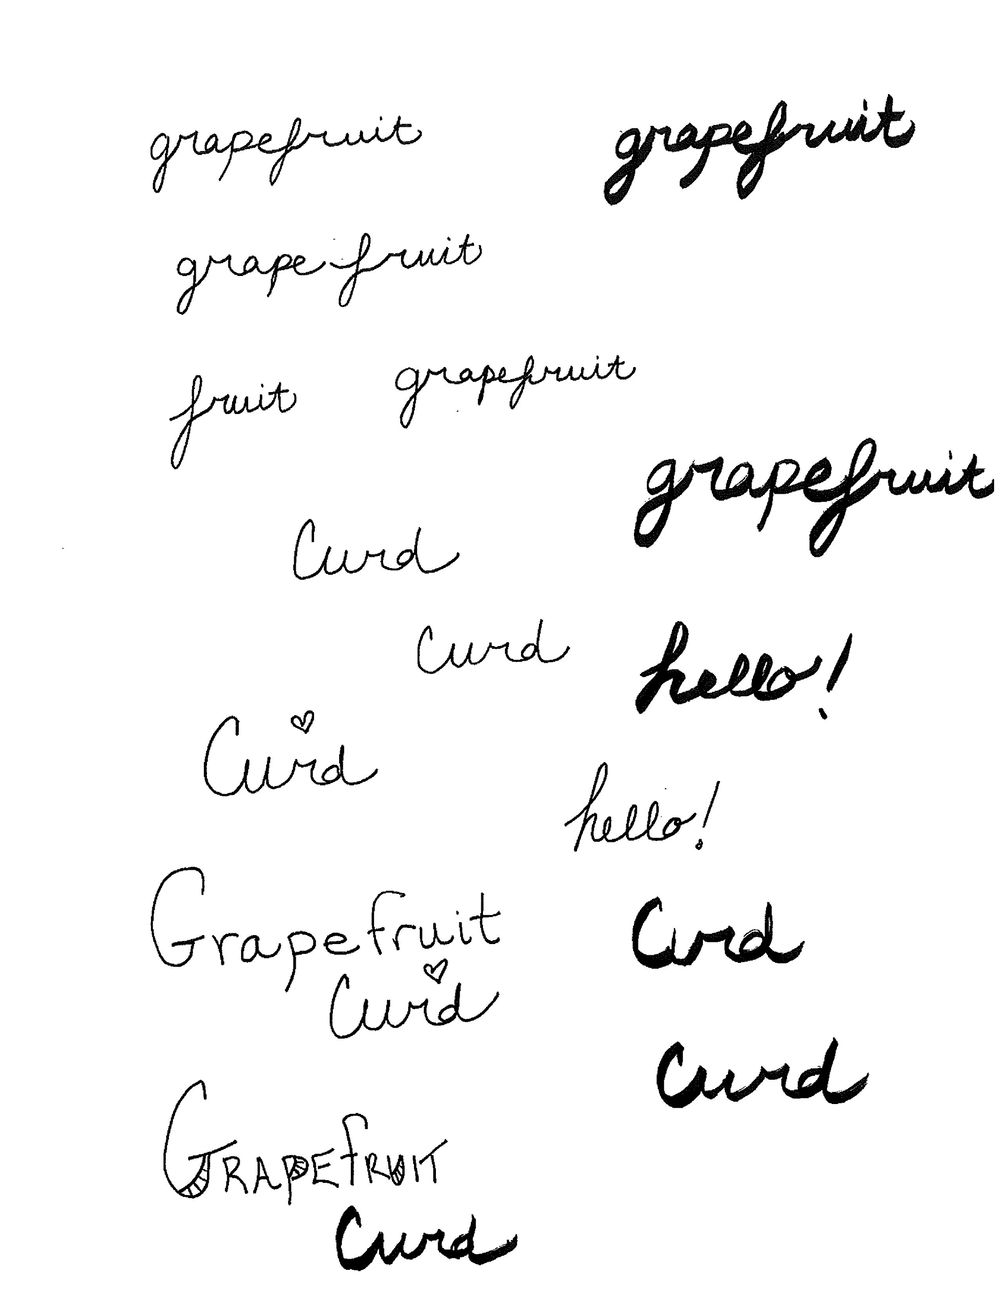 Grapefruit Curd - image 2 - student project